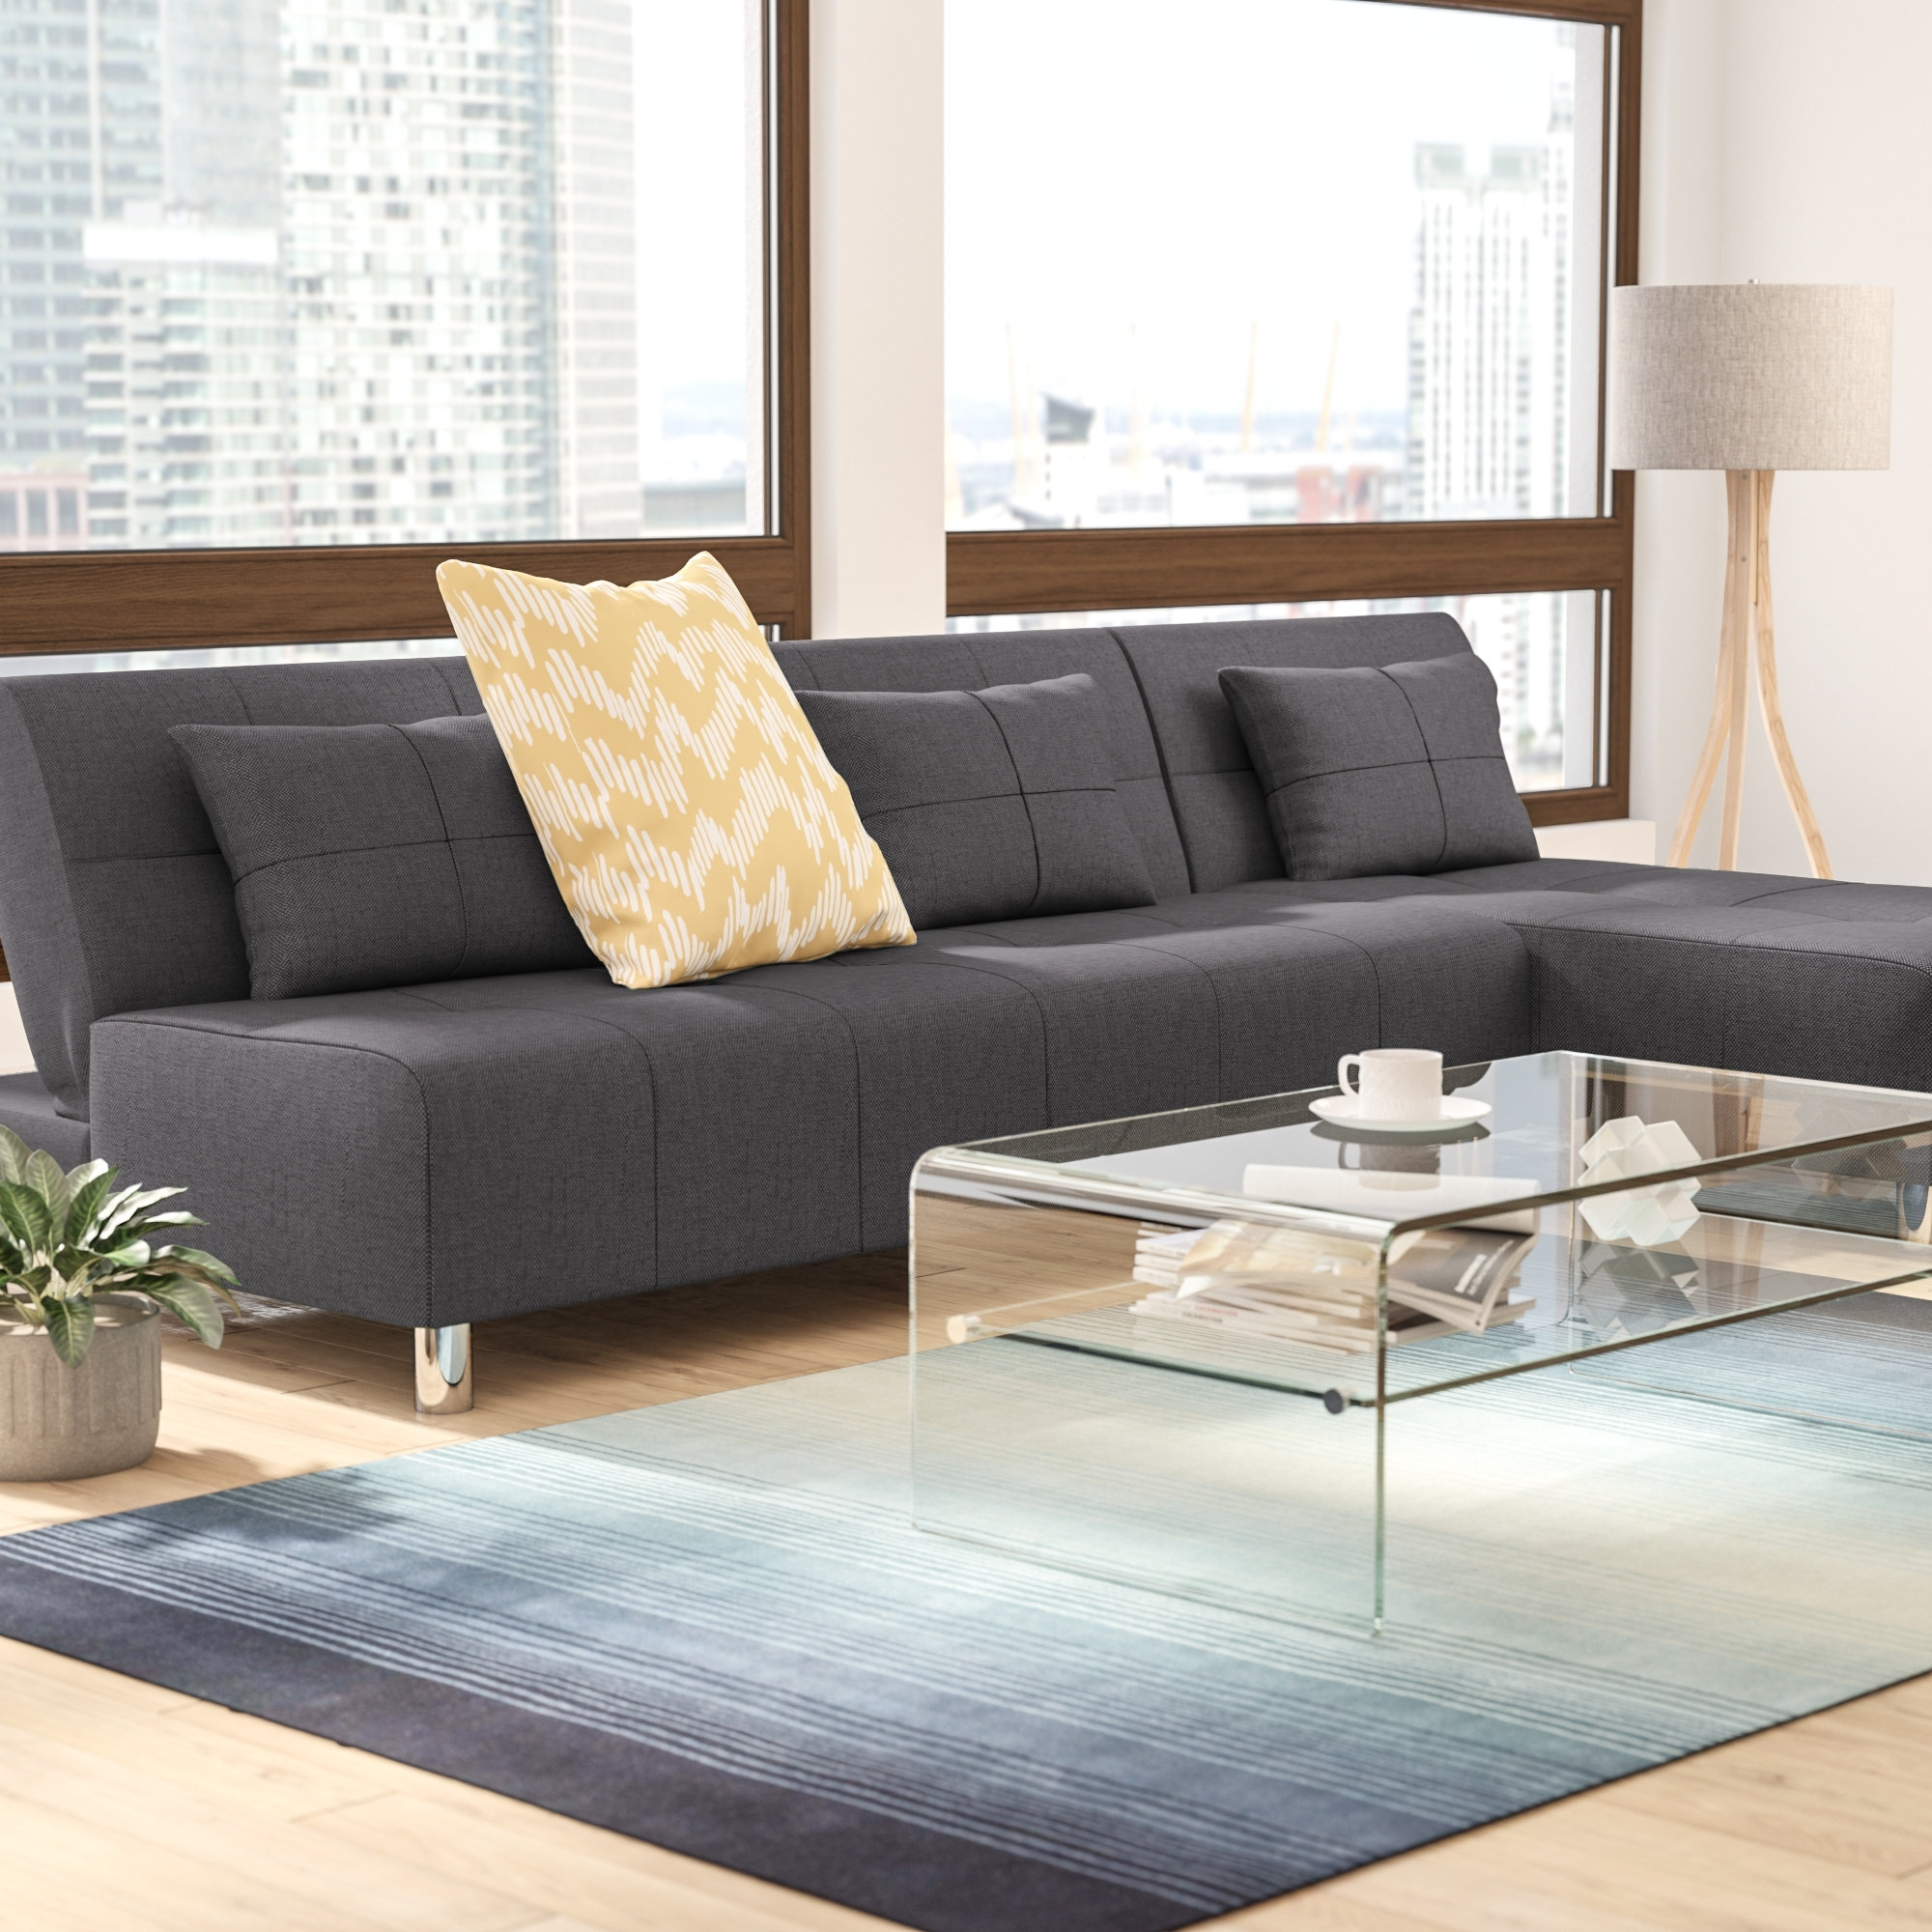 Wade Logan Ricardo Reversible Sleeper Sectional & Reviews | Wayfair pertaining to Collins Sofa Sectionals With Reversible Chaise (Image 28 of 30)